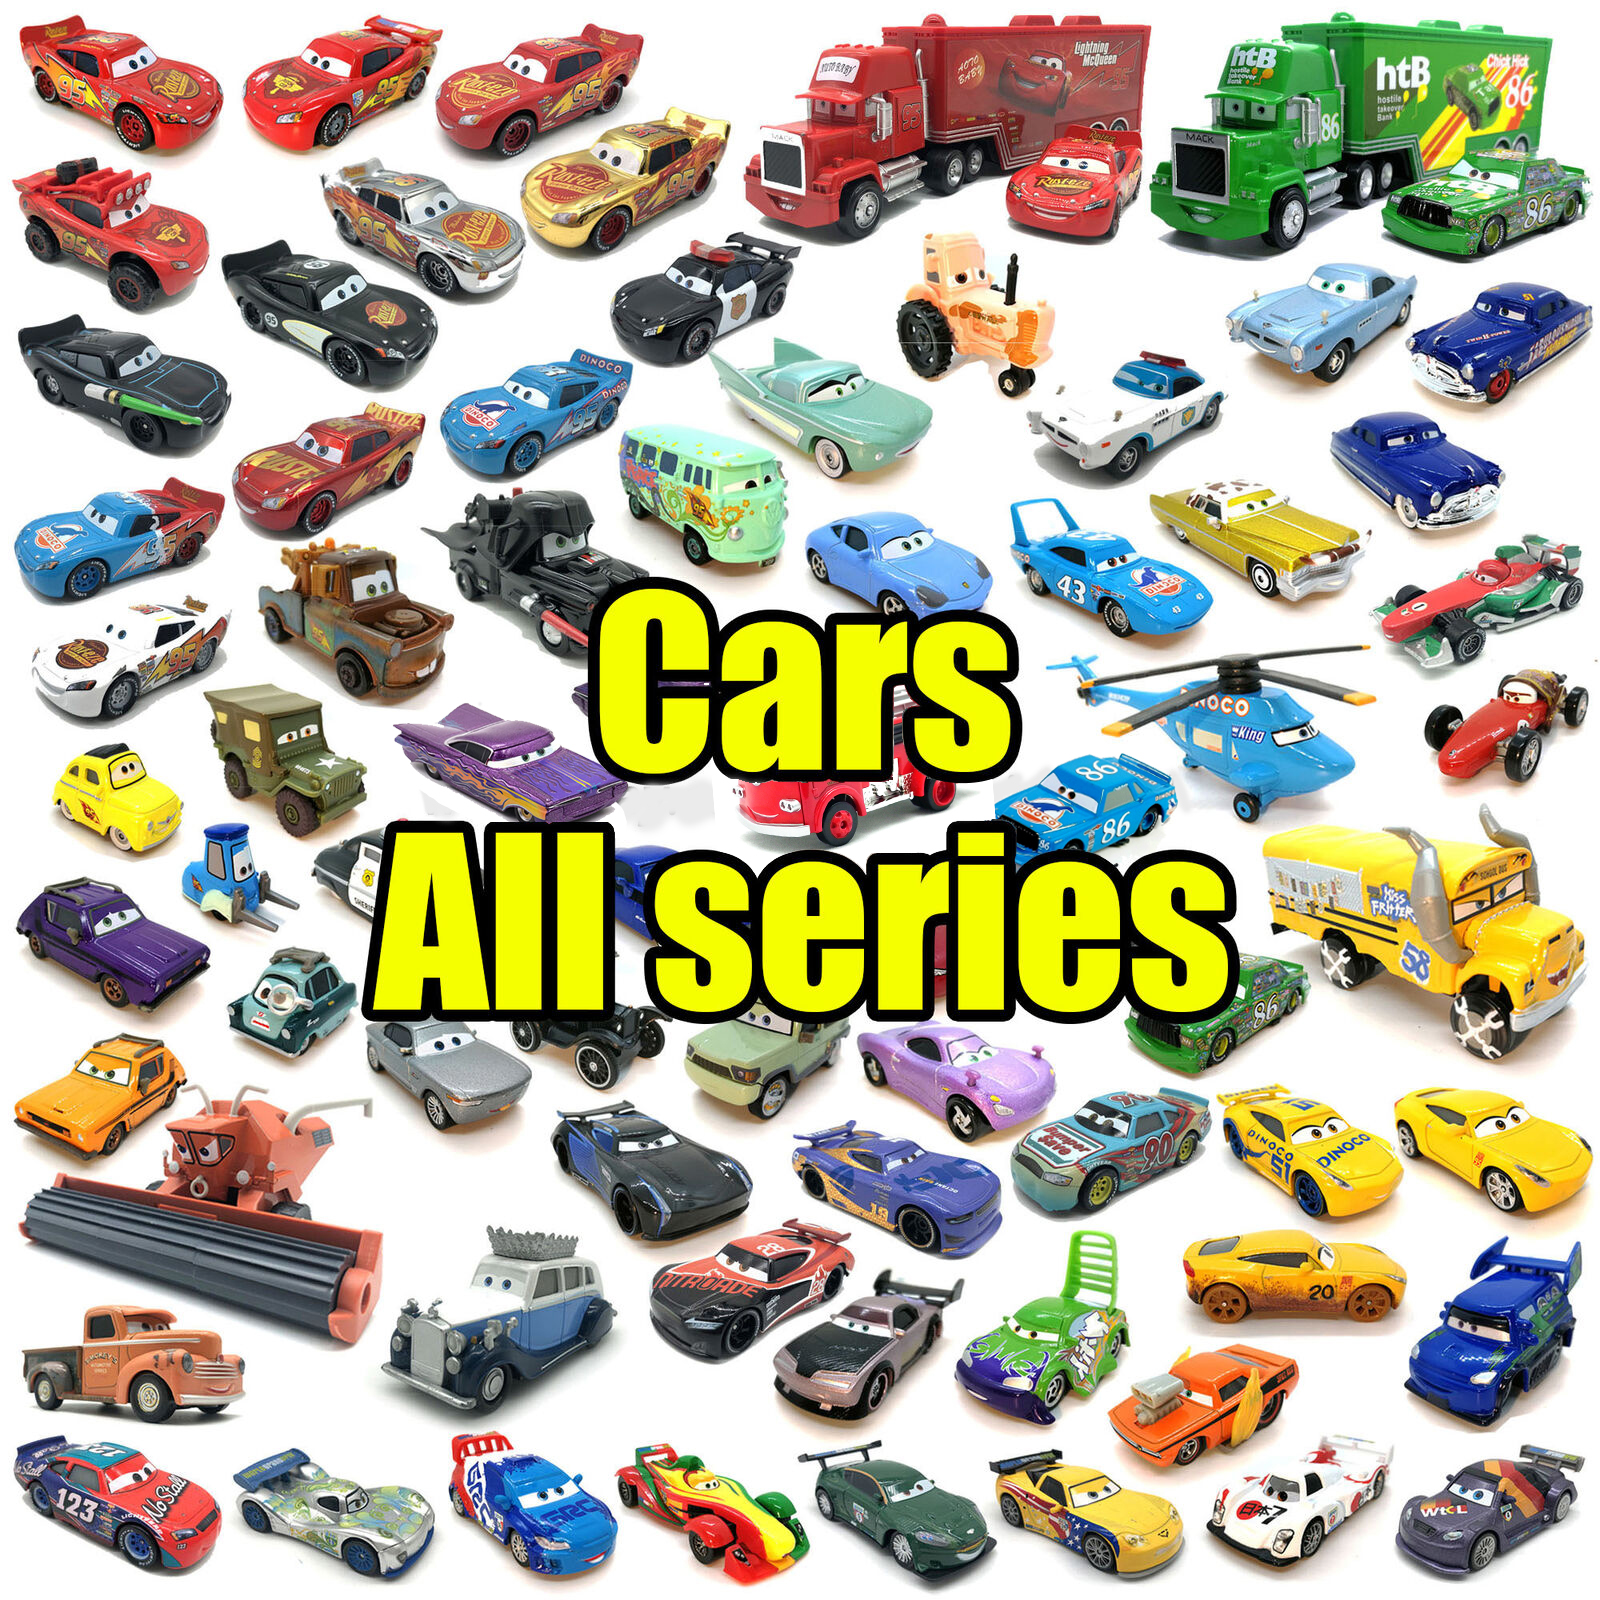 Disney Pixar Cars 3 For Kids McQueen 39 Style High Quality Car Alloy Cartoon Models Car Birthday Gift Toys Christmas Gifts Toys